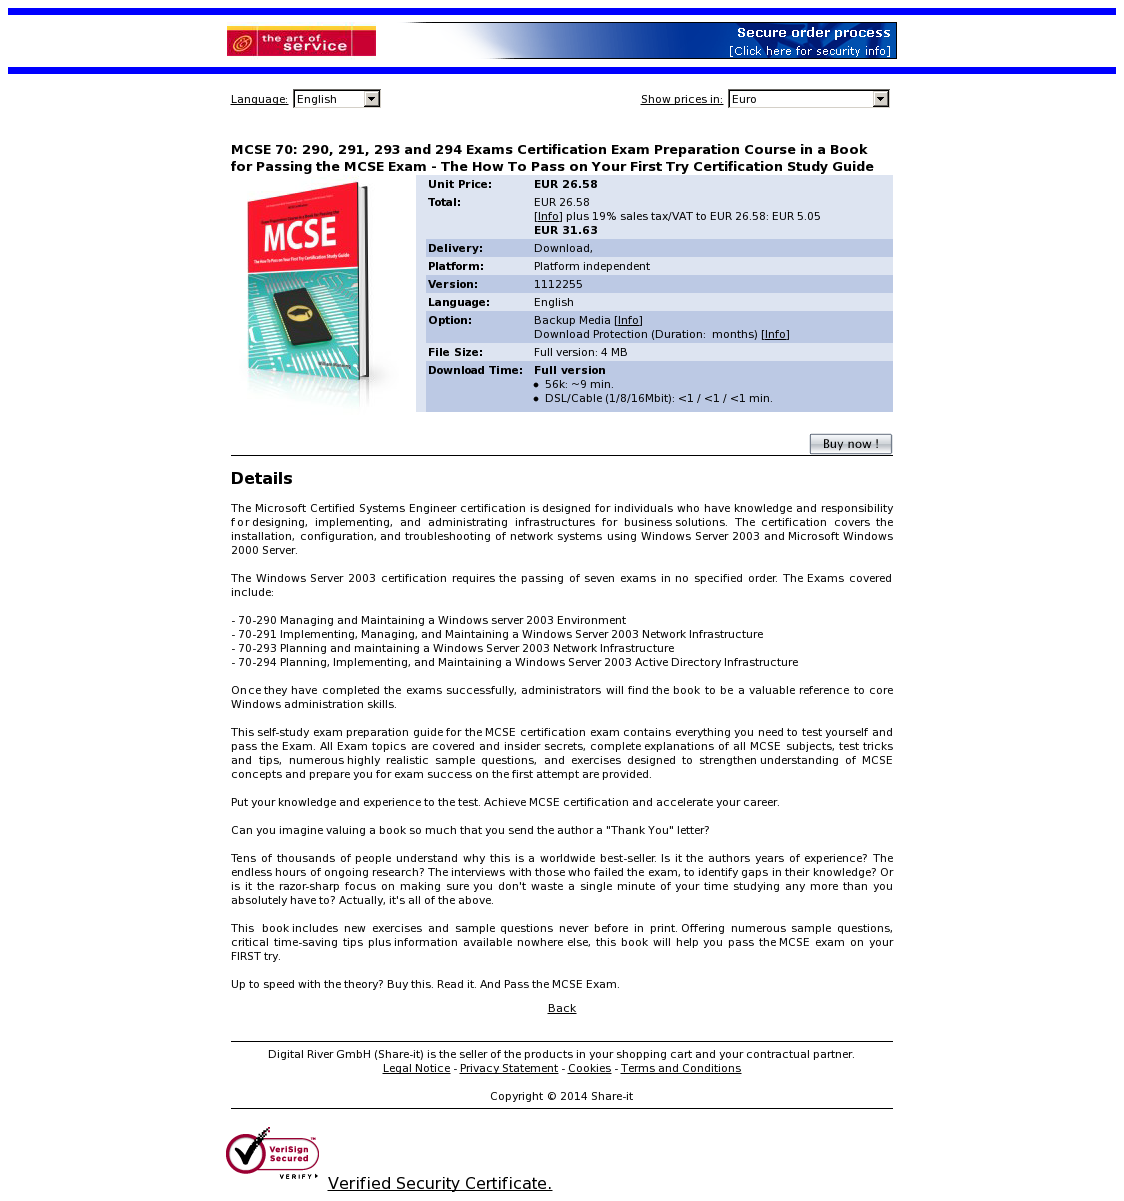 MCSE 70: 290, 291, 293 and 294 Exams Certification Exam Preparation Course in a Book for Passing the MCSE Exam - The How To Pass on Your First Try Certification Study Guide